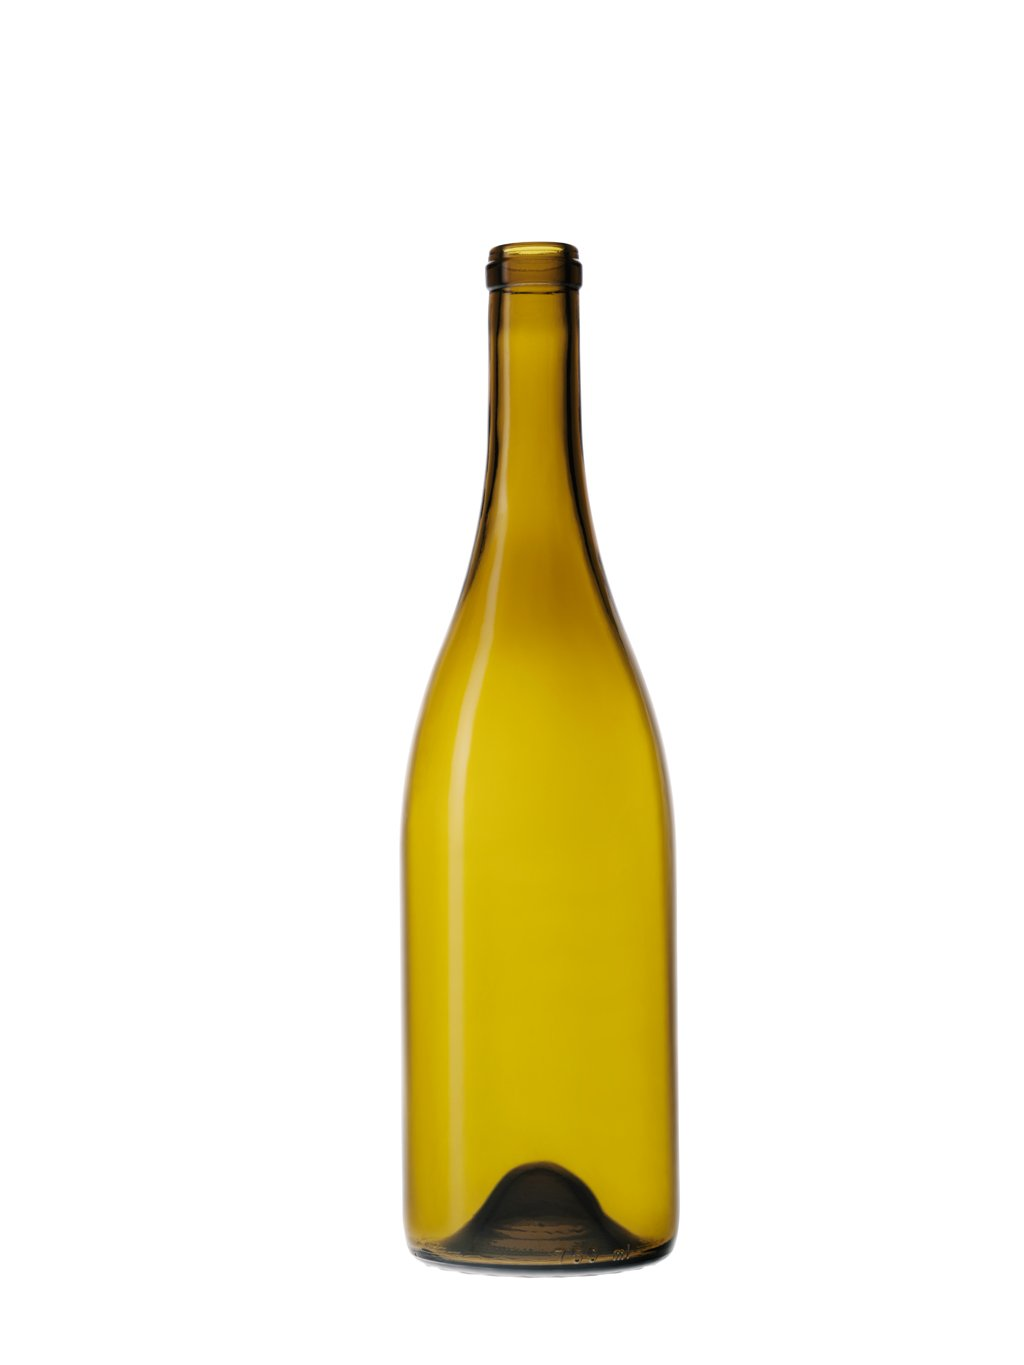 Guman Vineyard, The Sylphs Chardonnay 2013